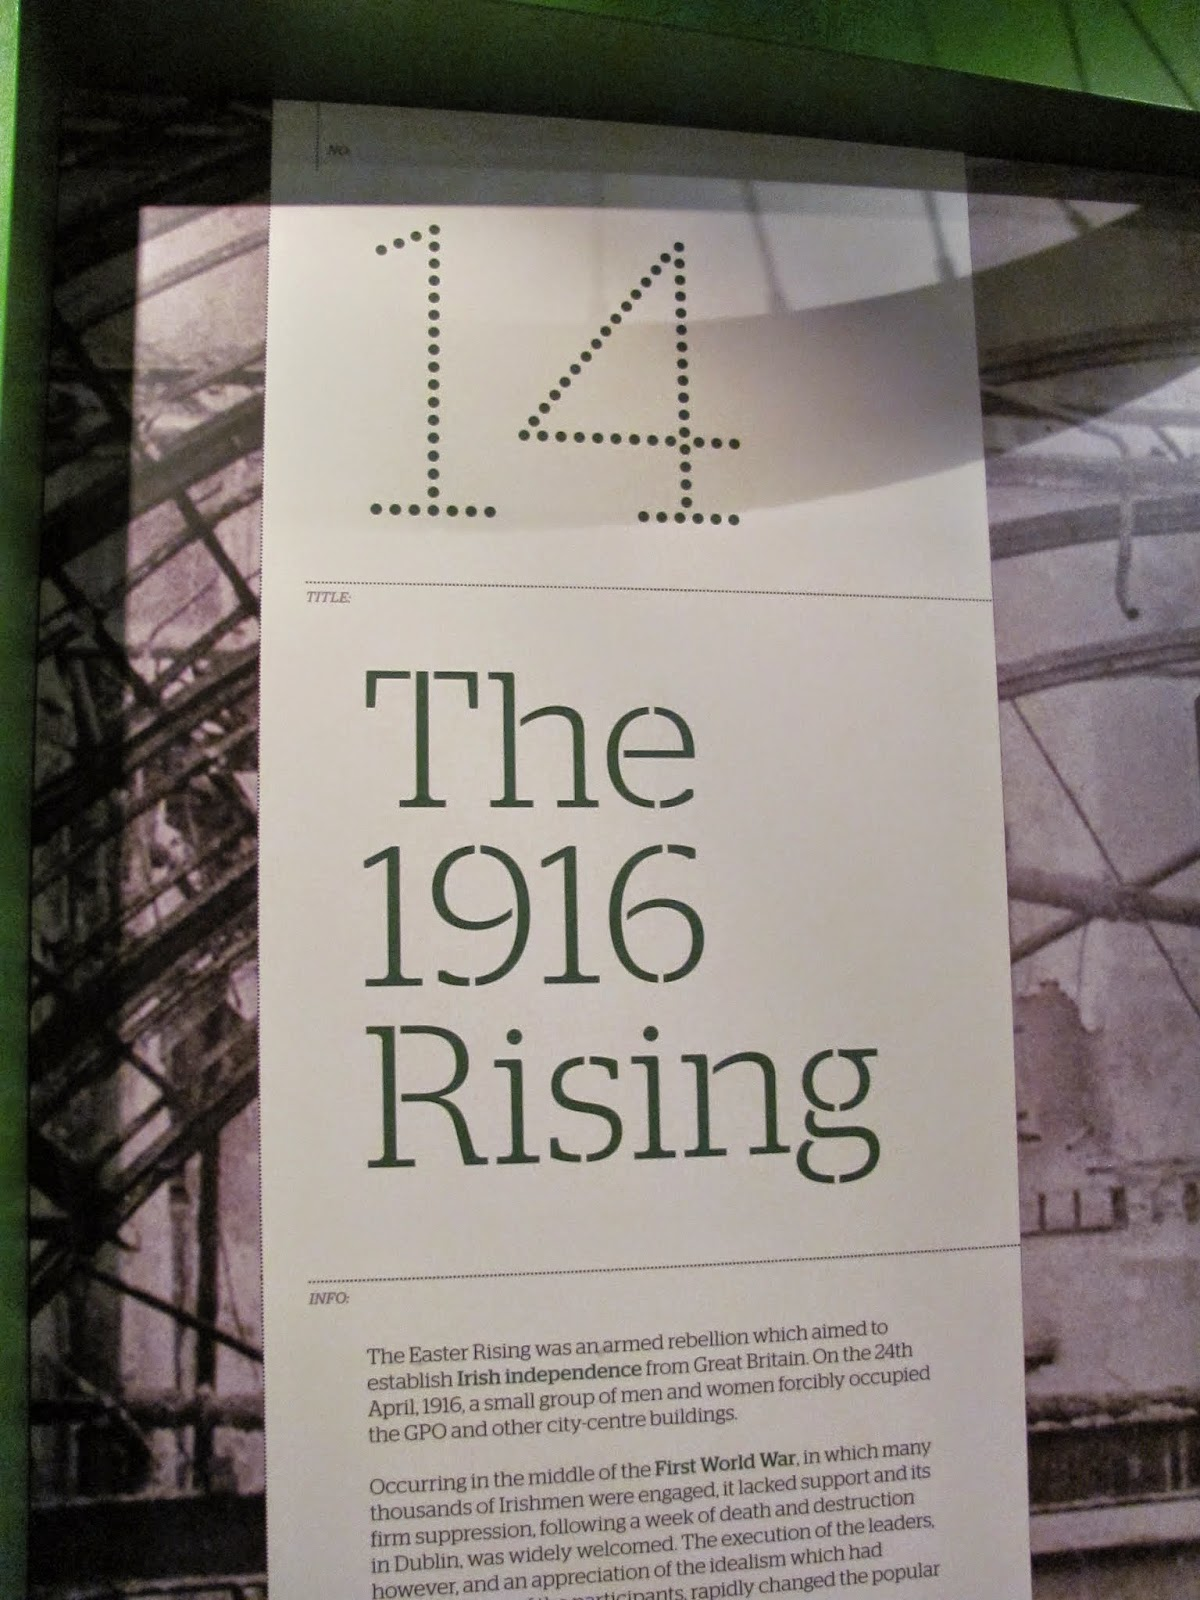 The 1916 Rising Exhibit